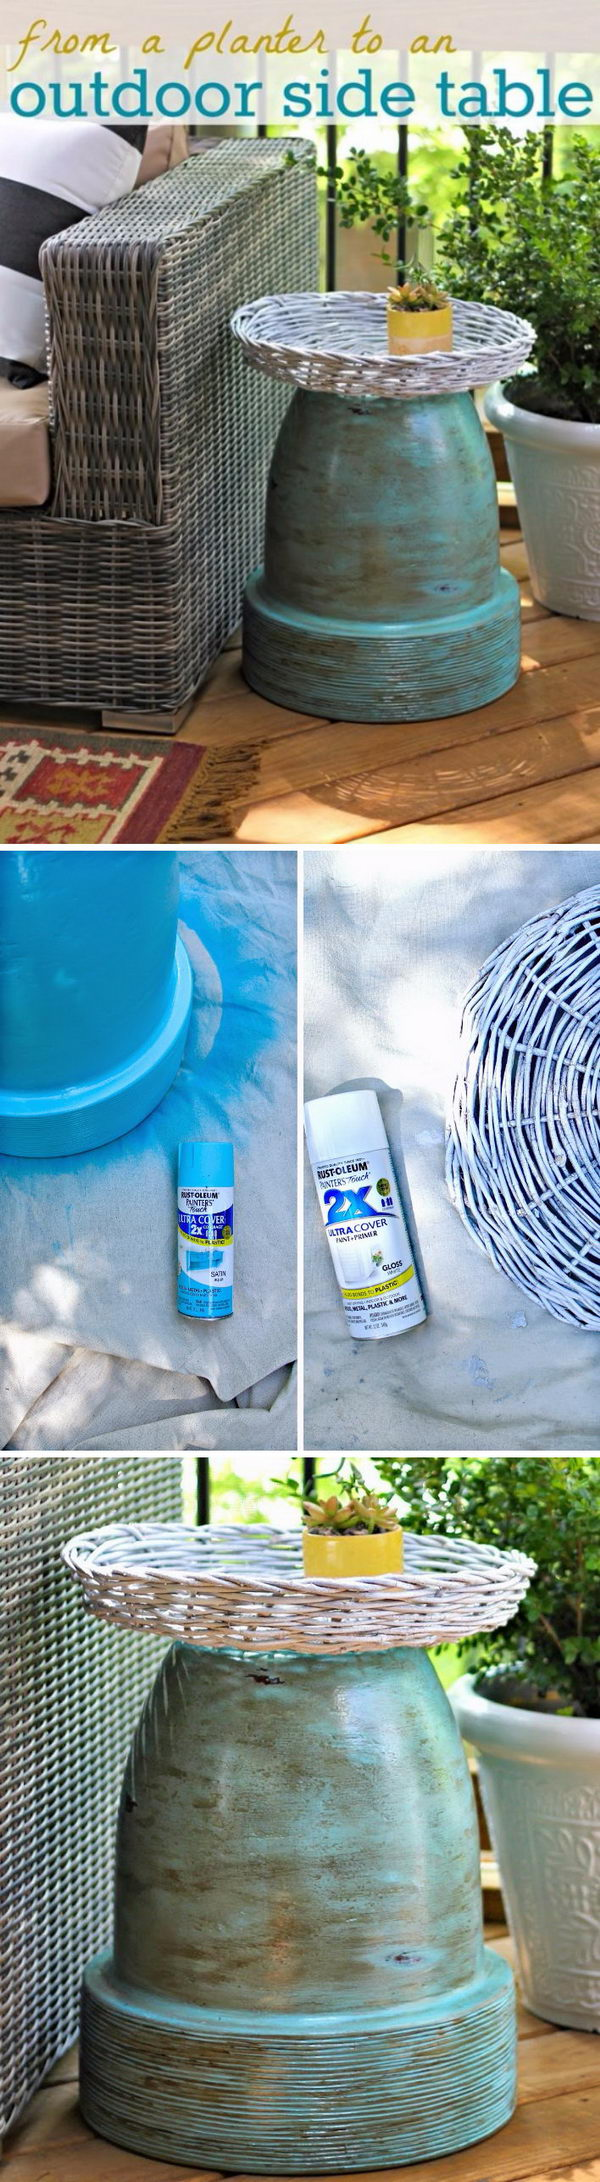 awesome diy side table ideas for outdoors and indoors hative tutorials ceramic accent outdoor terracotta pot kirklands small patio with umbrella cabinet doors seattle lighting